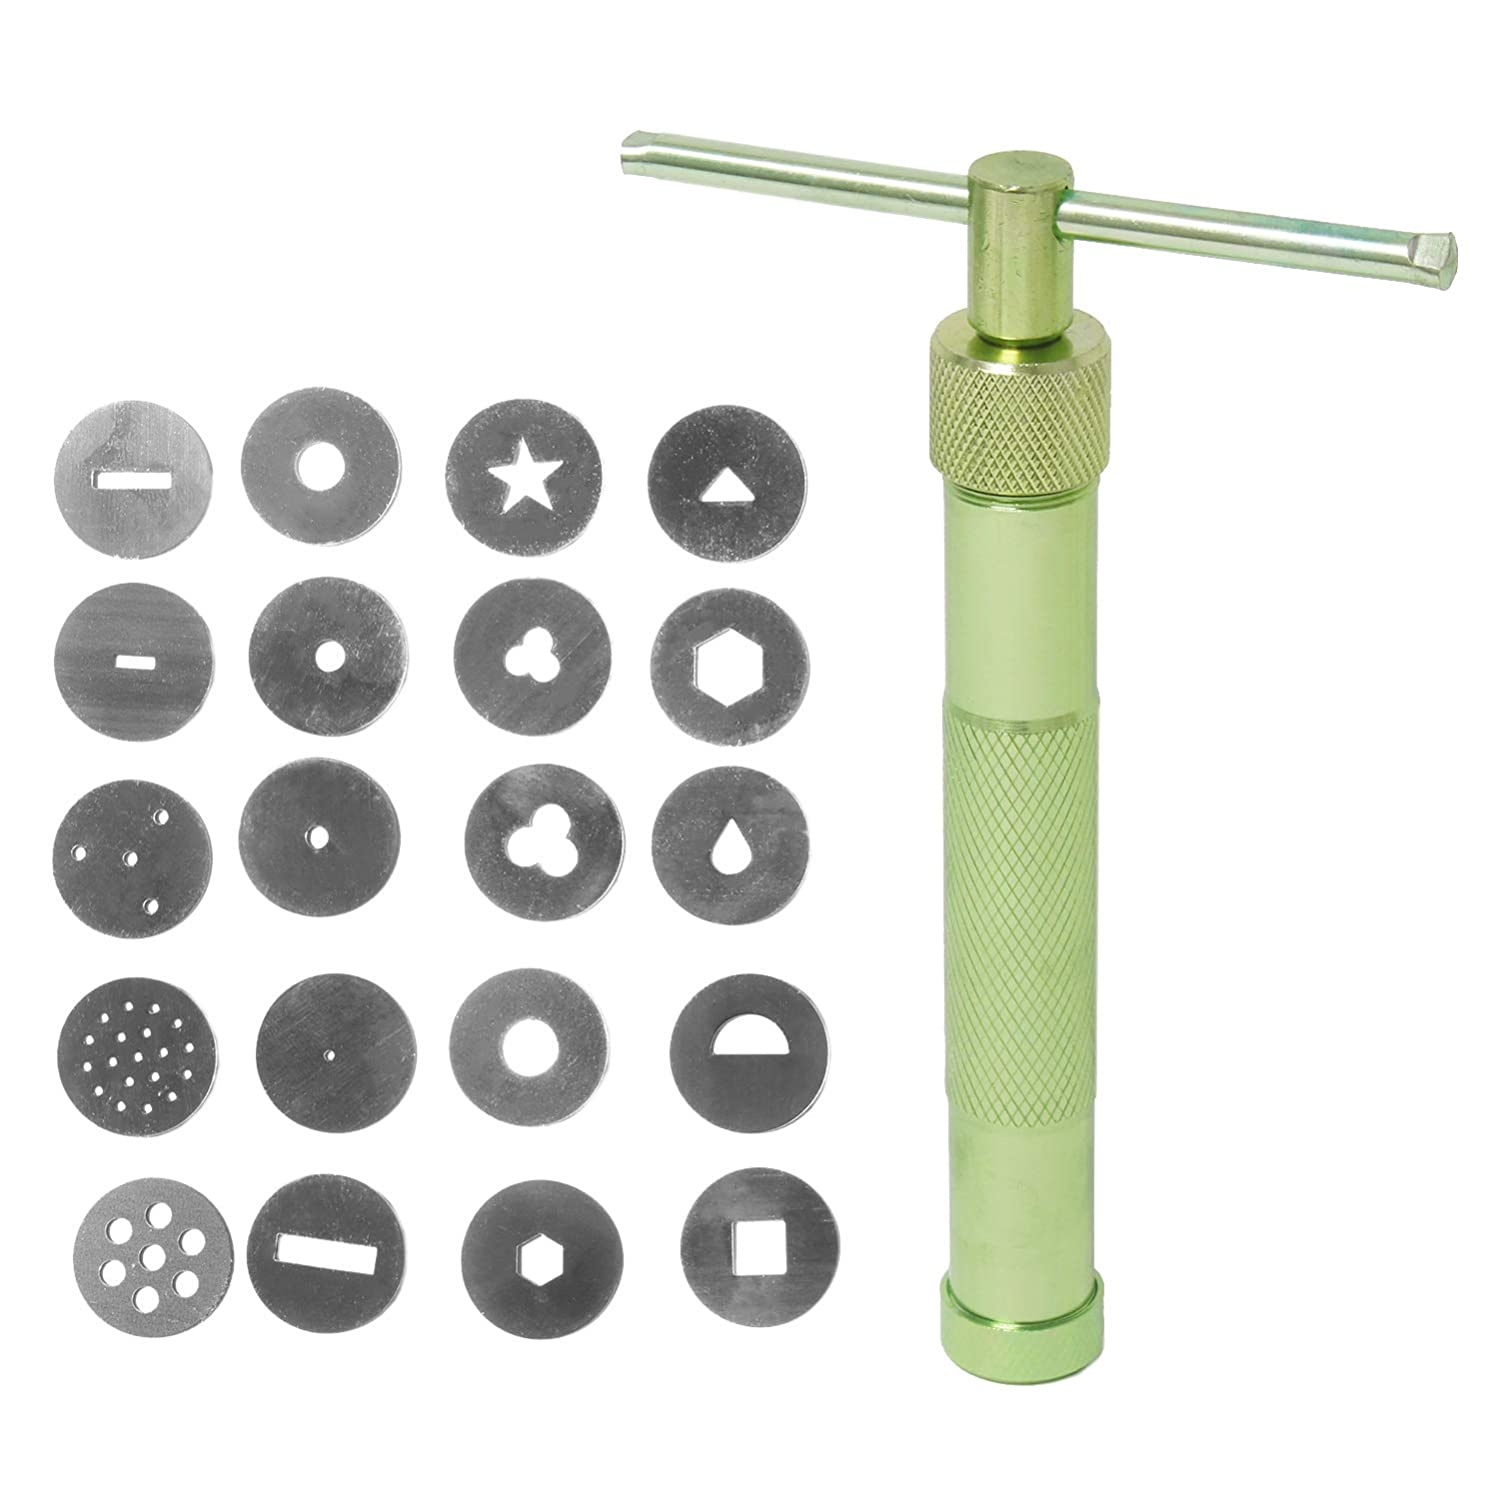 Handheld Clay and Fondant Extruder Gun - Polymer, Sugar Paste Extruder with 20 Discs, Professional Tool for Cake and Cupcake Decorating, Ceramic, Pottery, Sculpture, Craft, 4 x 6 Inches